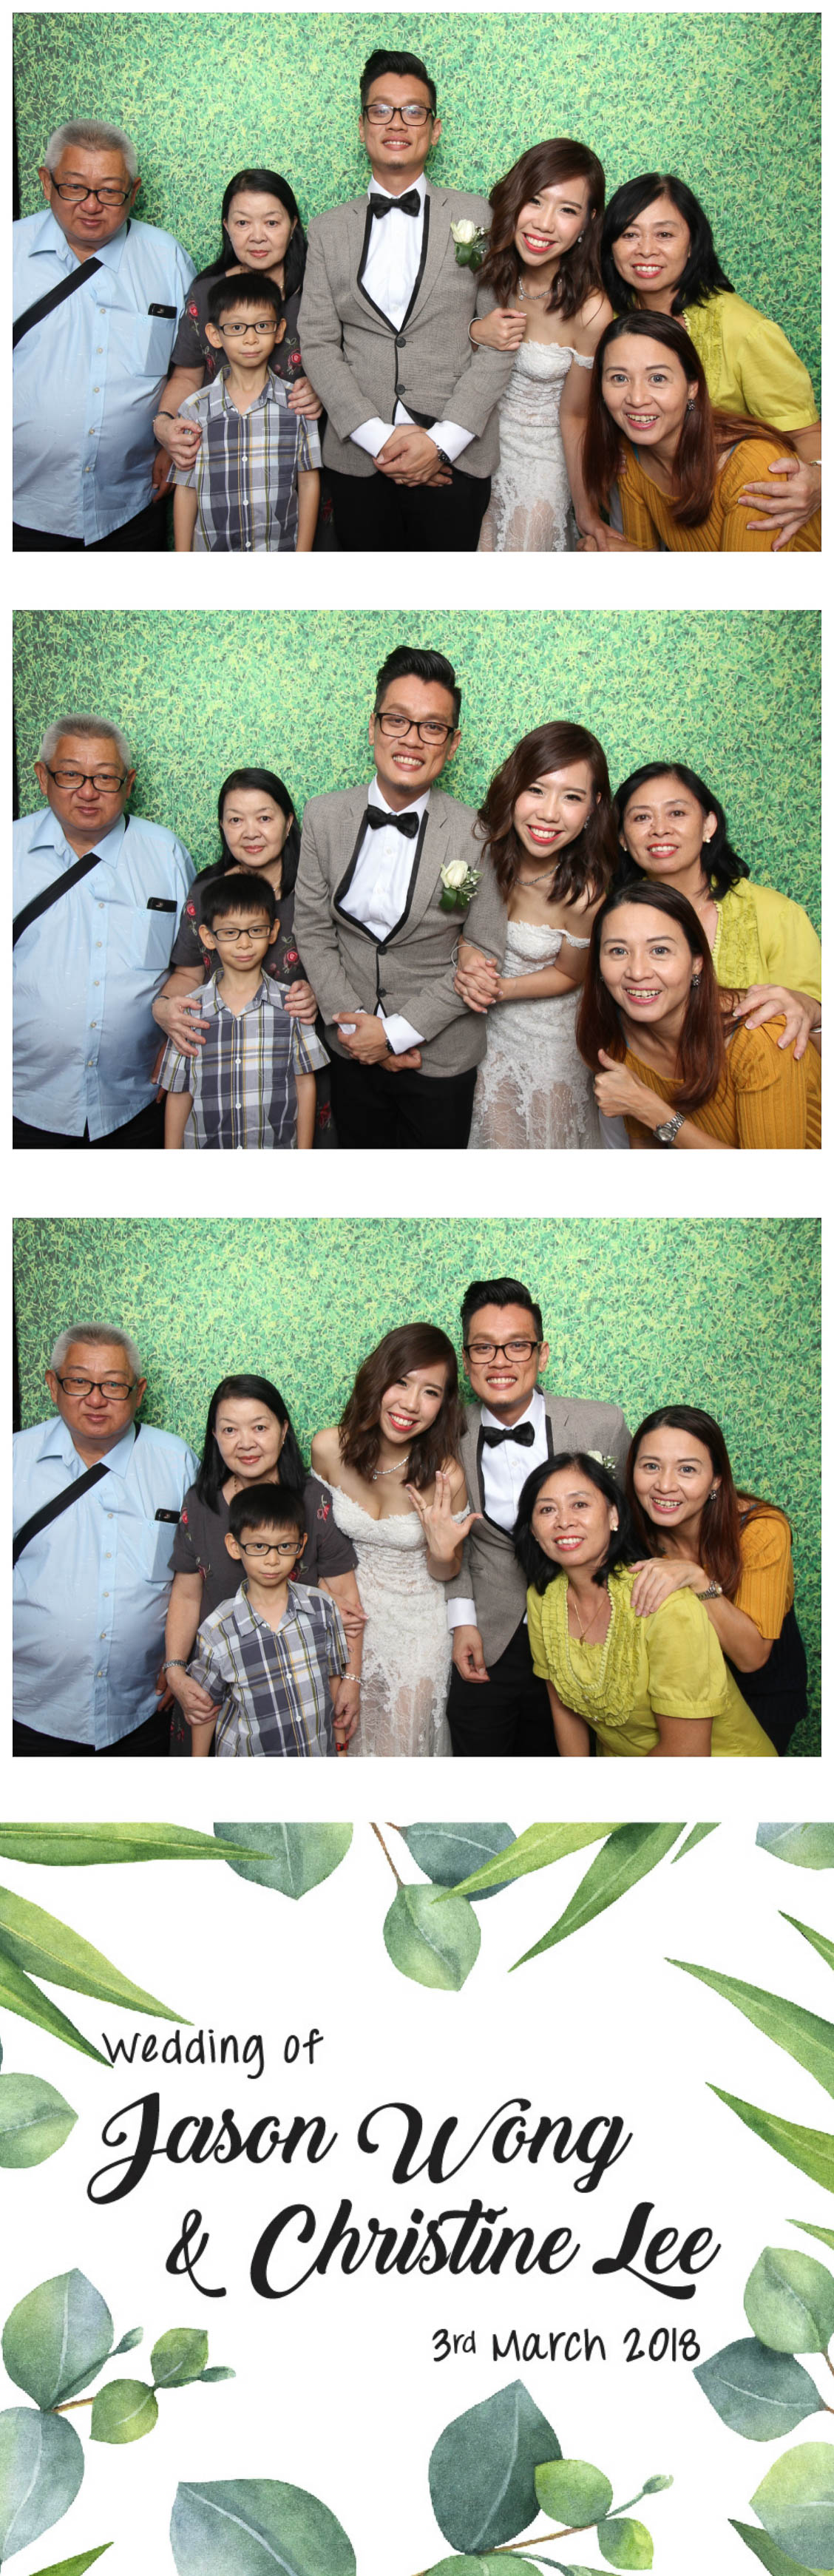 Photobooth 0302-26